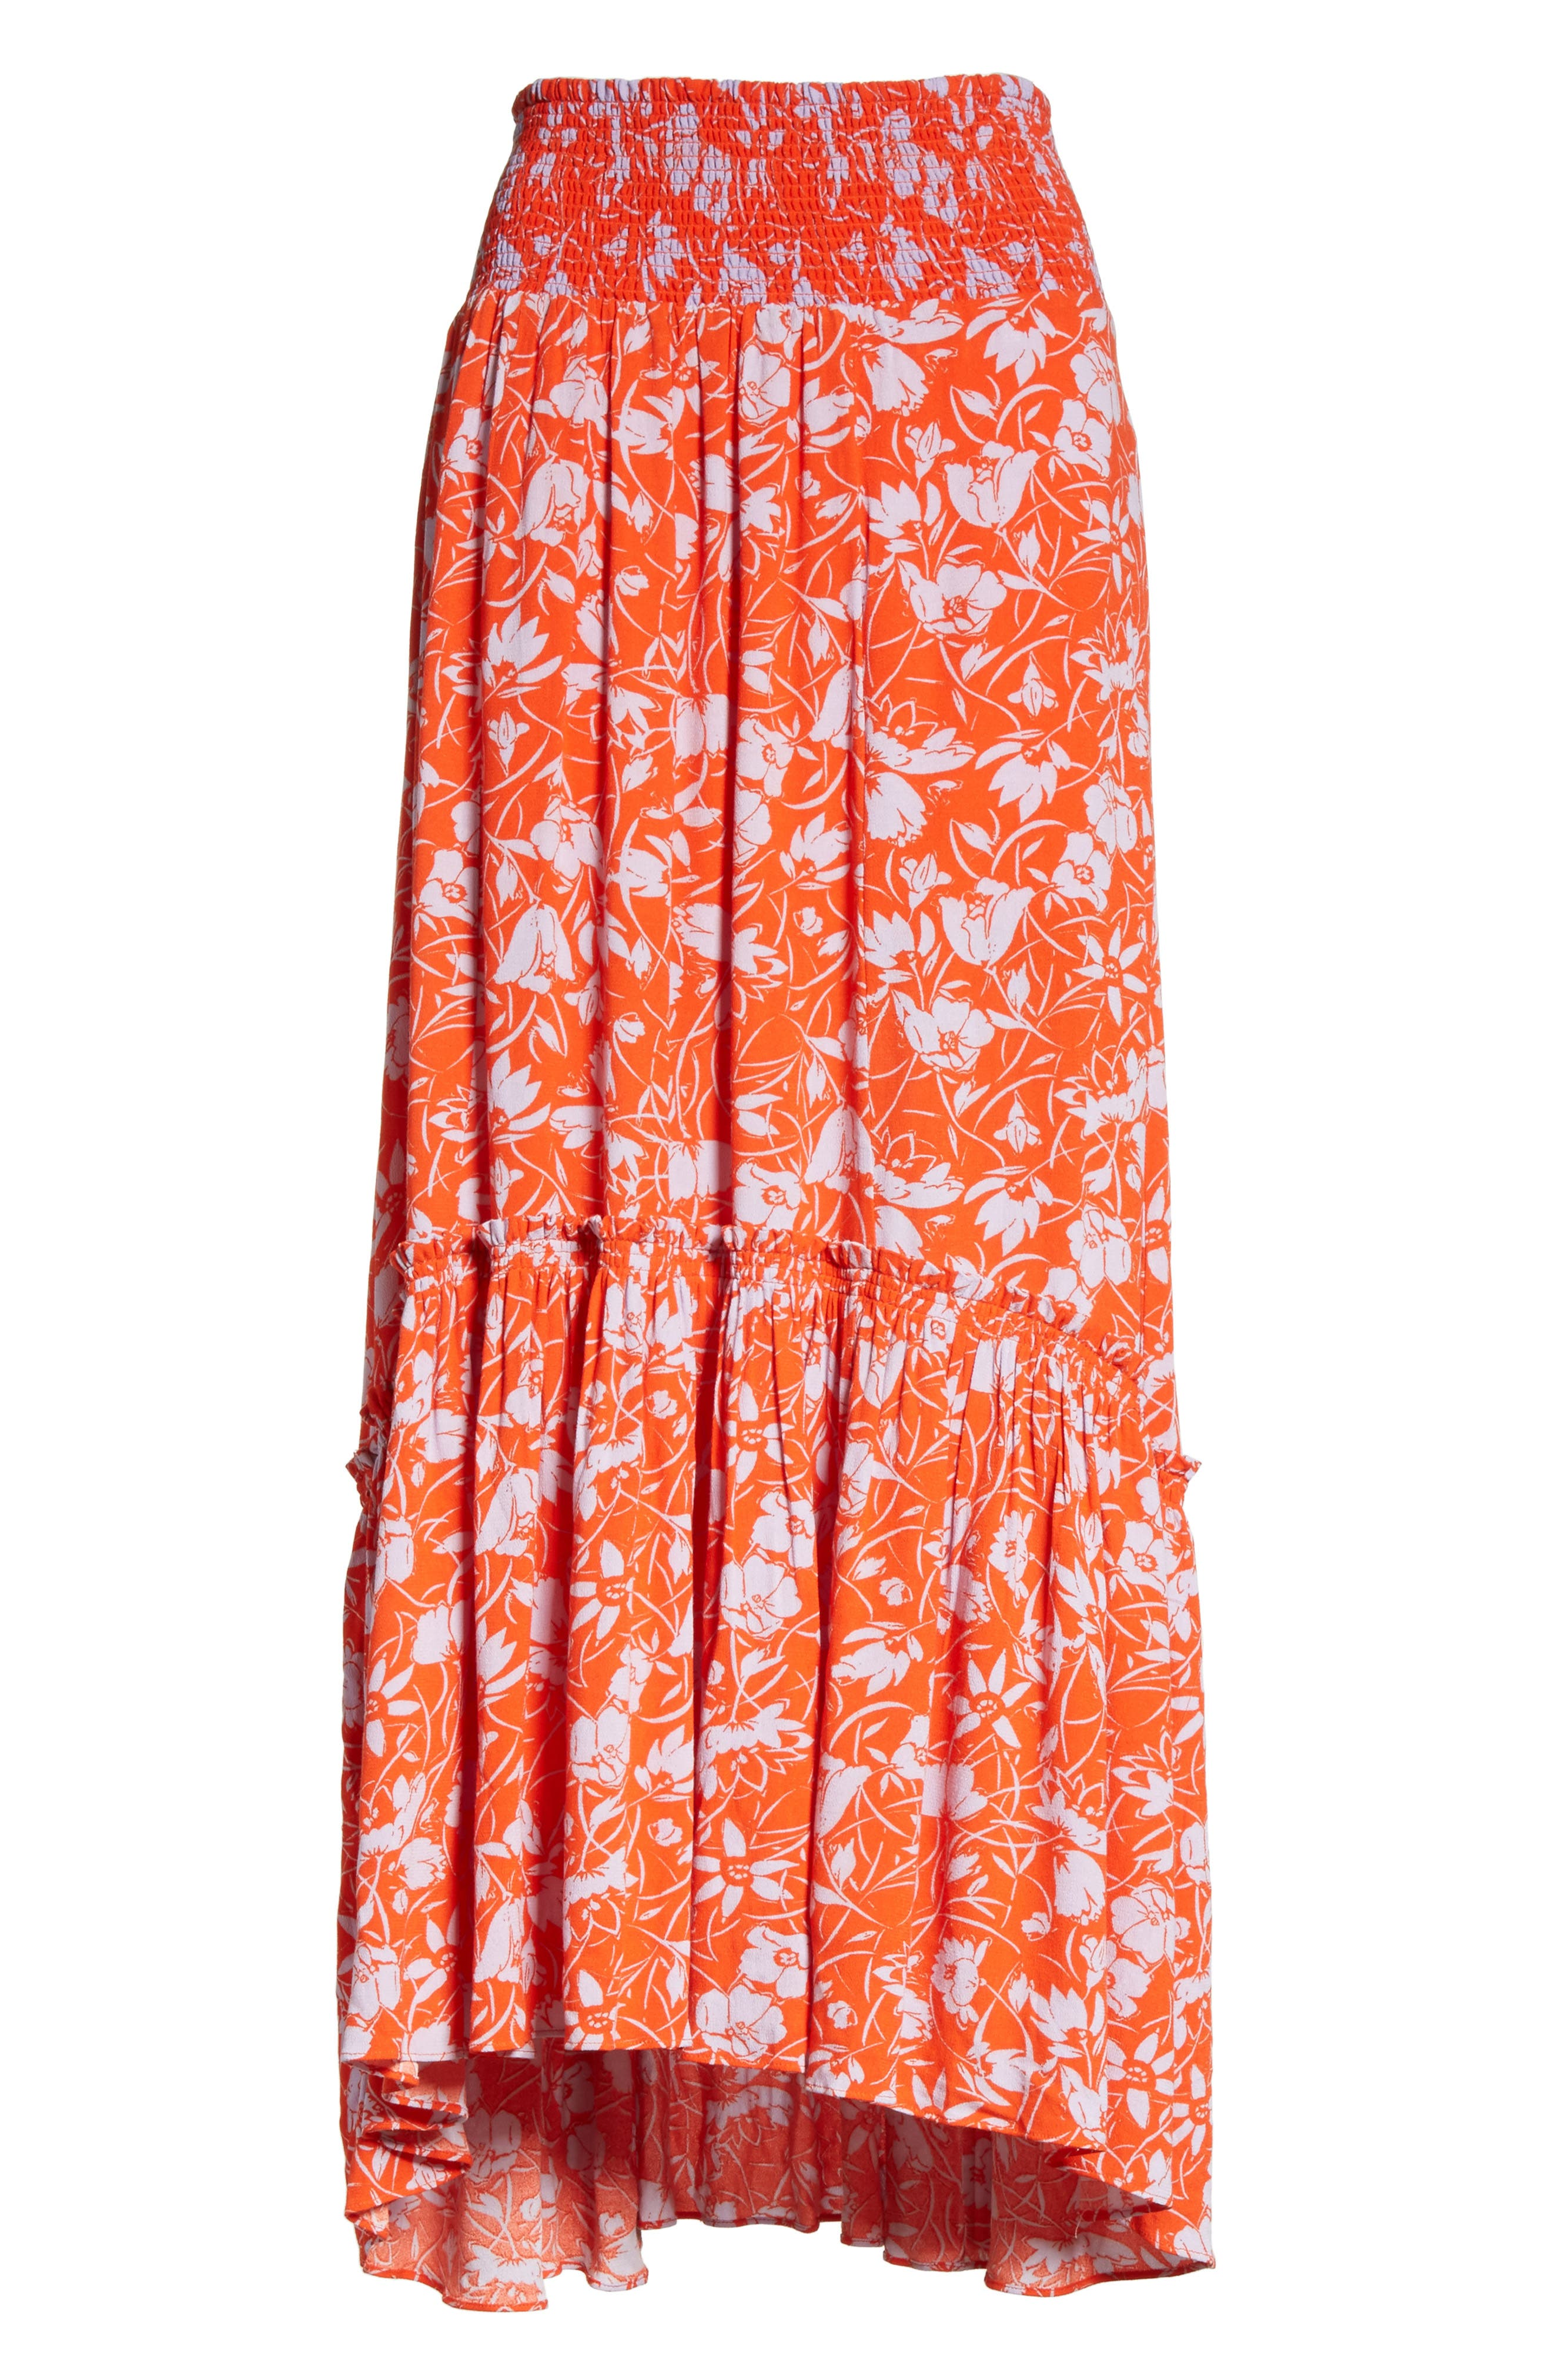 Way of the Wind Print Maxi Skirt,                             Alternate thumbnail 6, color,                             Red